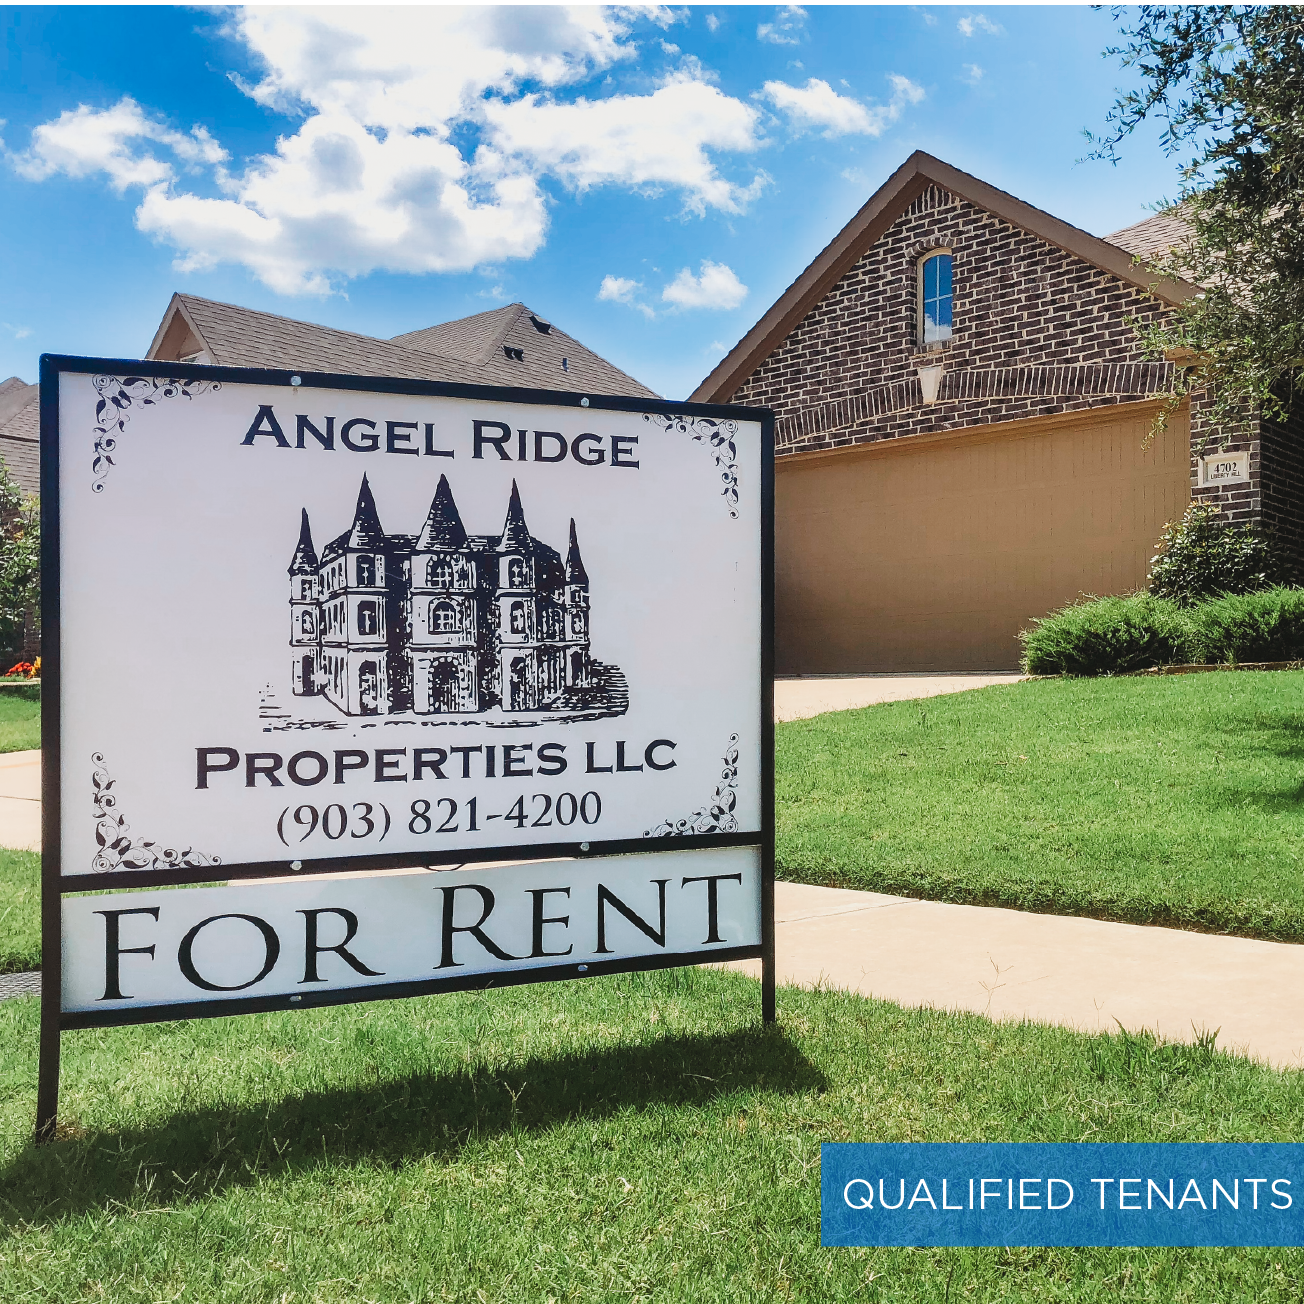 Angel Ridge Properties, LLC